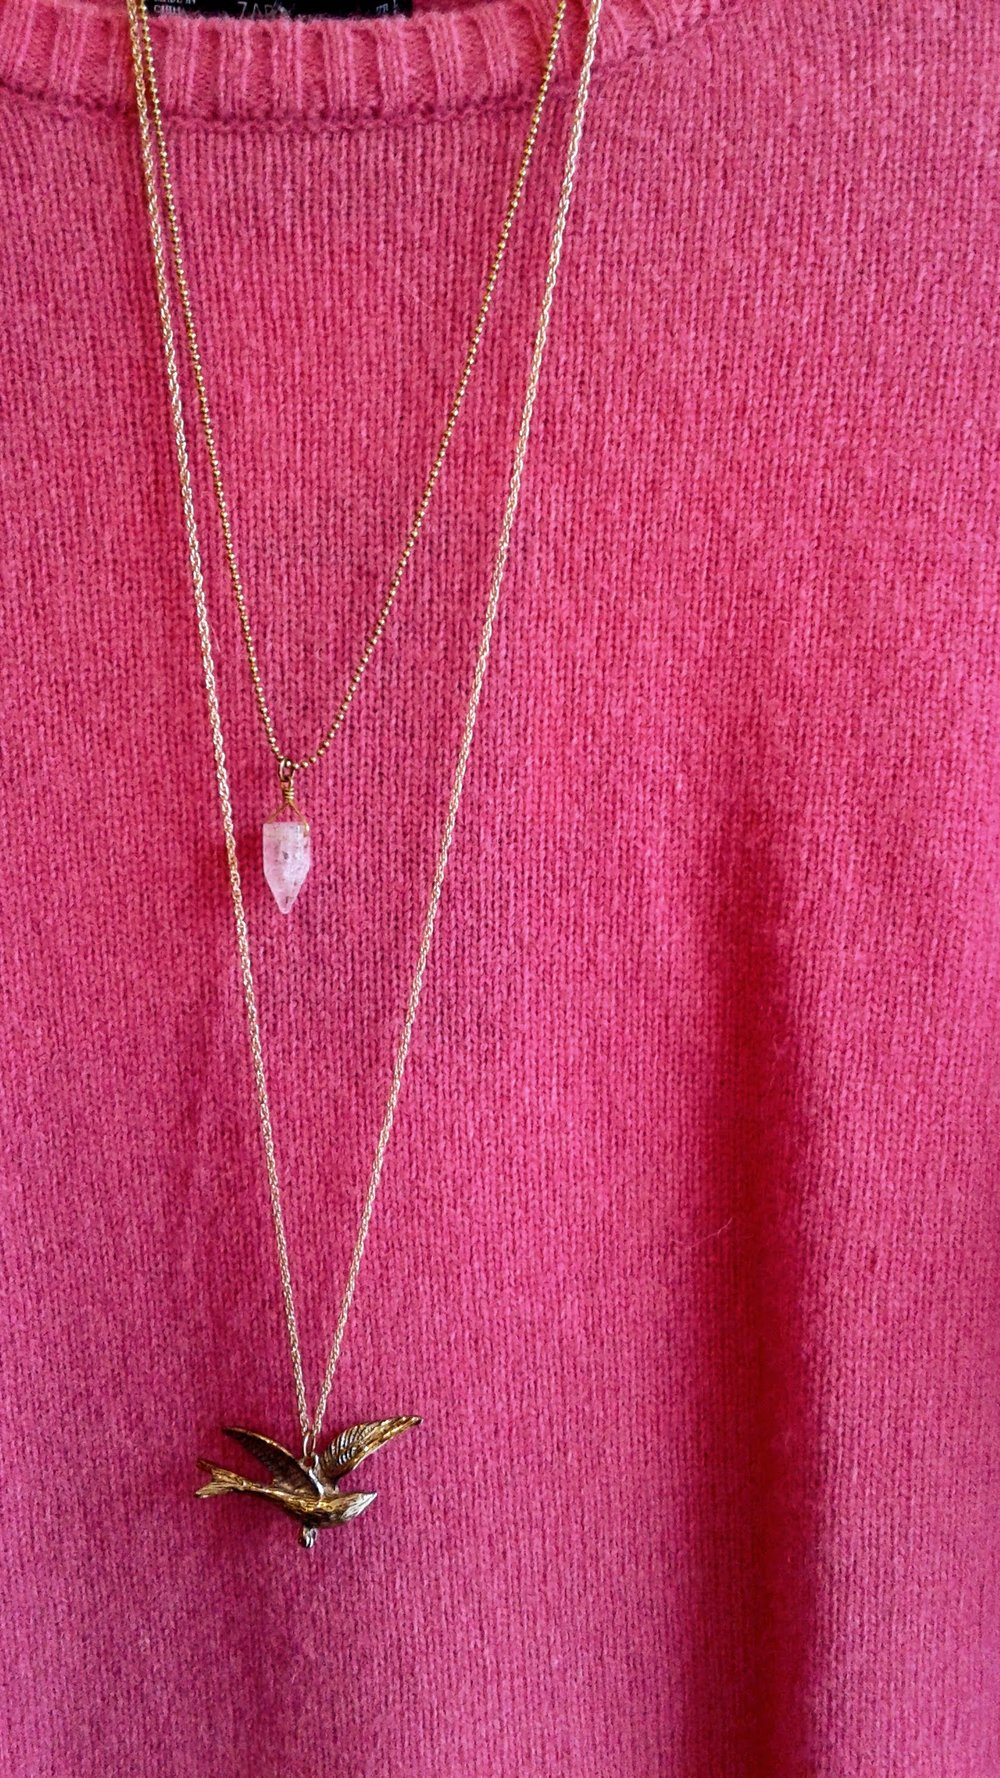 Pink quartz necklace, $24; Sparrow necklace, $18